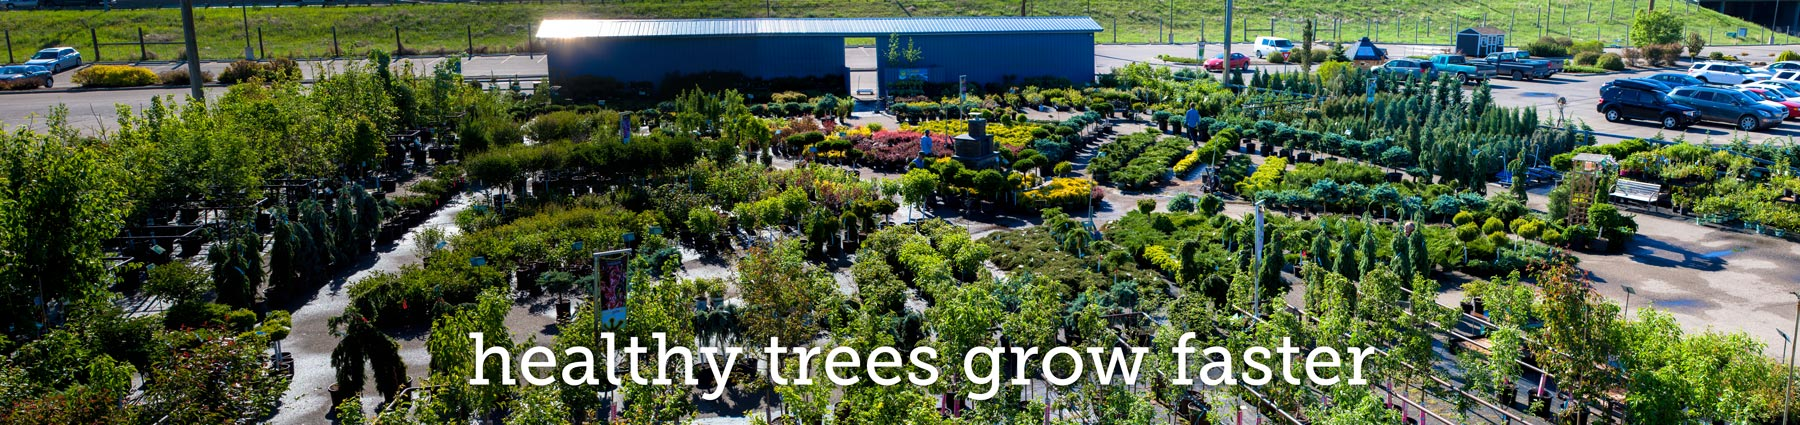 greengate's tree and shrub selection